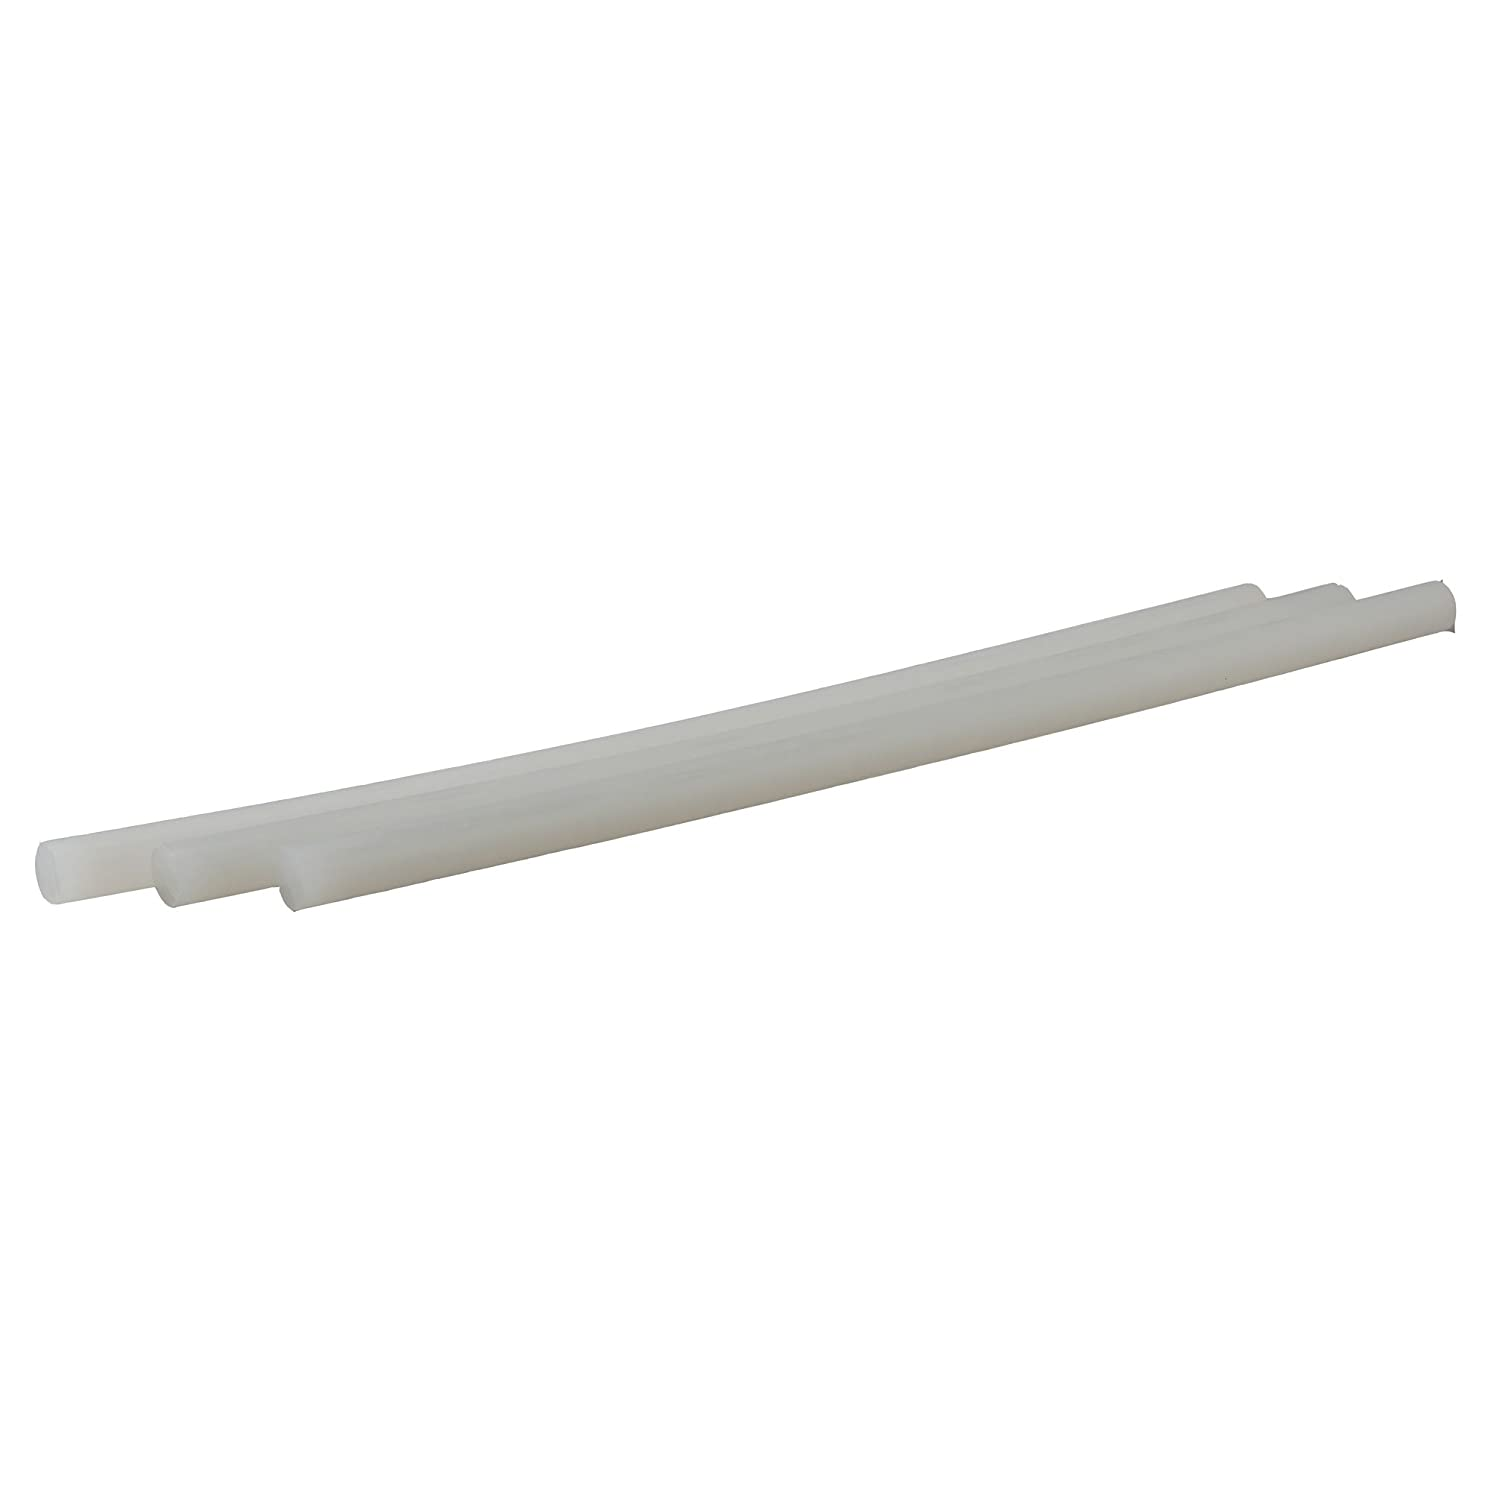 3M Hot Melt Adhesive 3764 AE Clear.45 in x 12 in, 11 lb